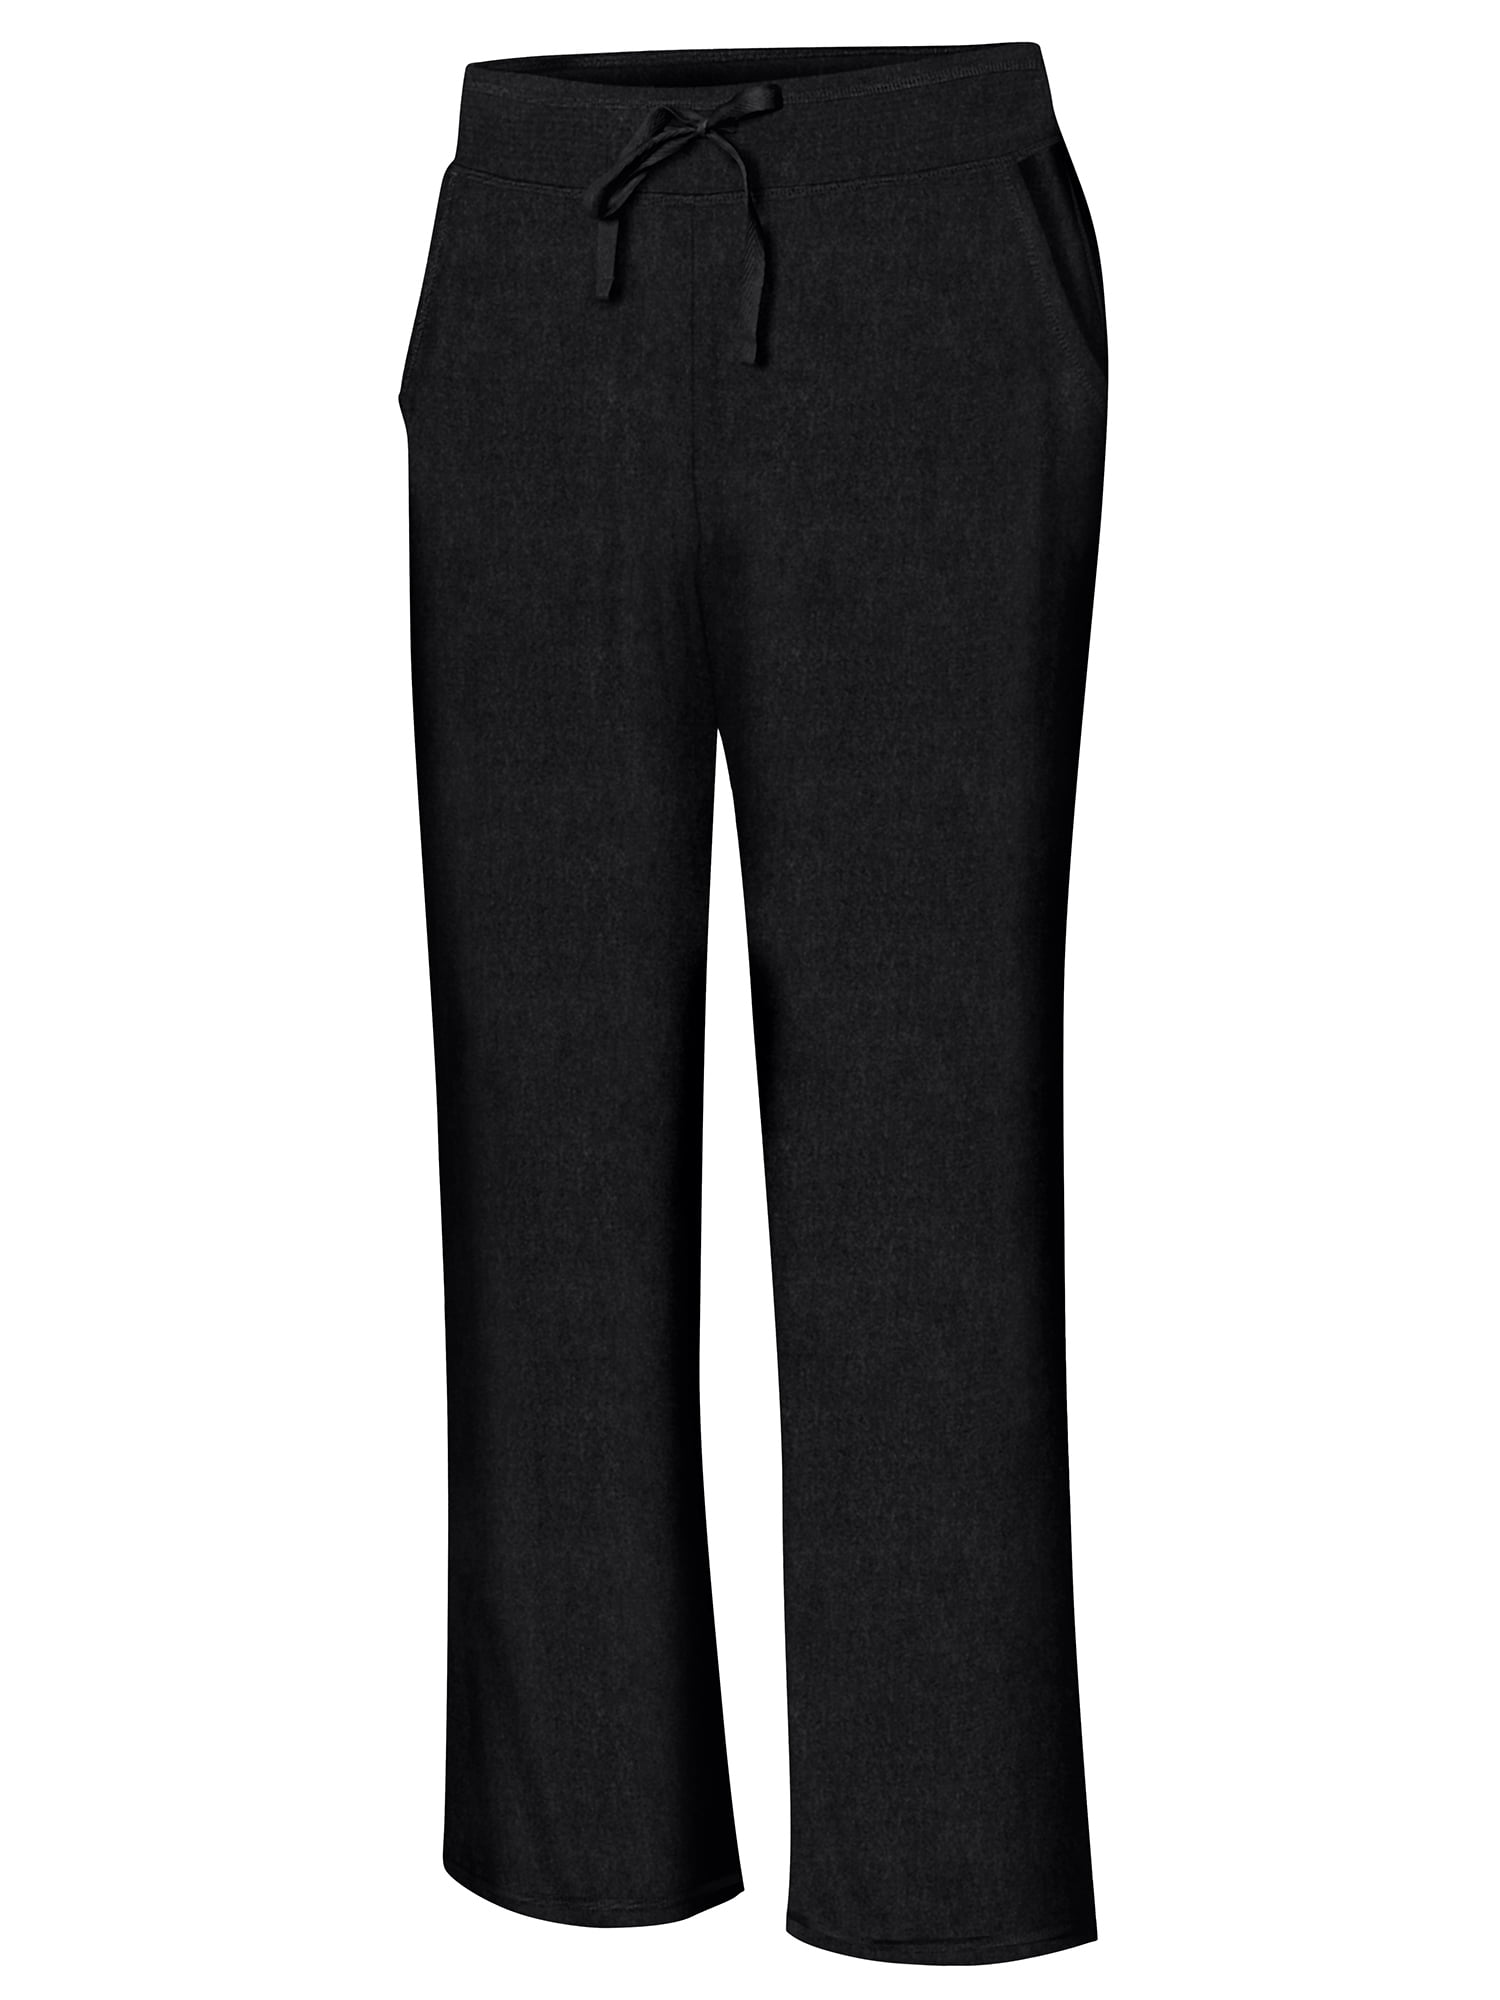 3d441c3b1f Hanes - Women s Athleisure French Terry Pant with Pockets - Walmart.com